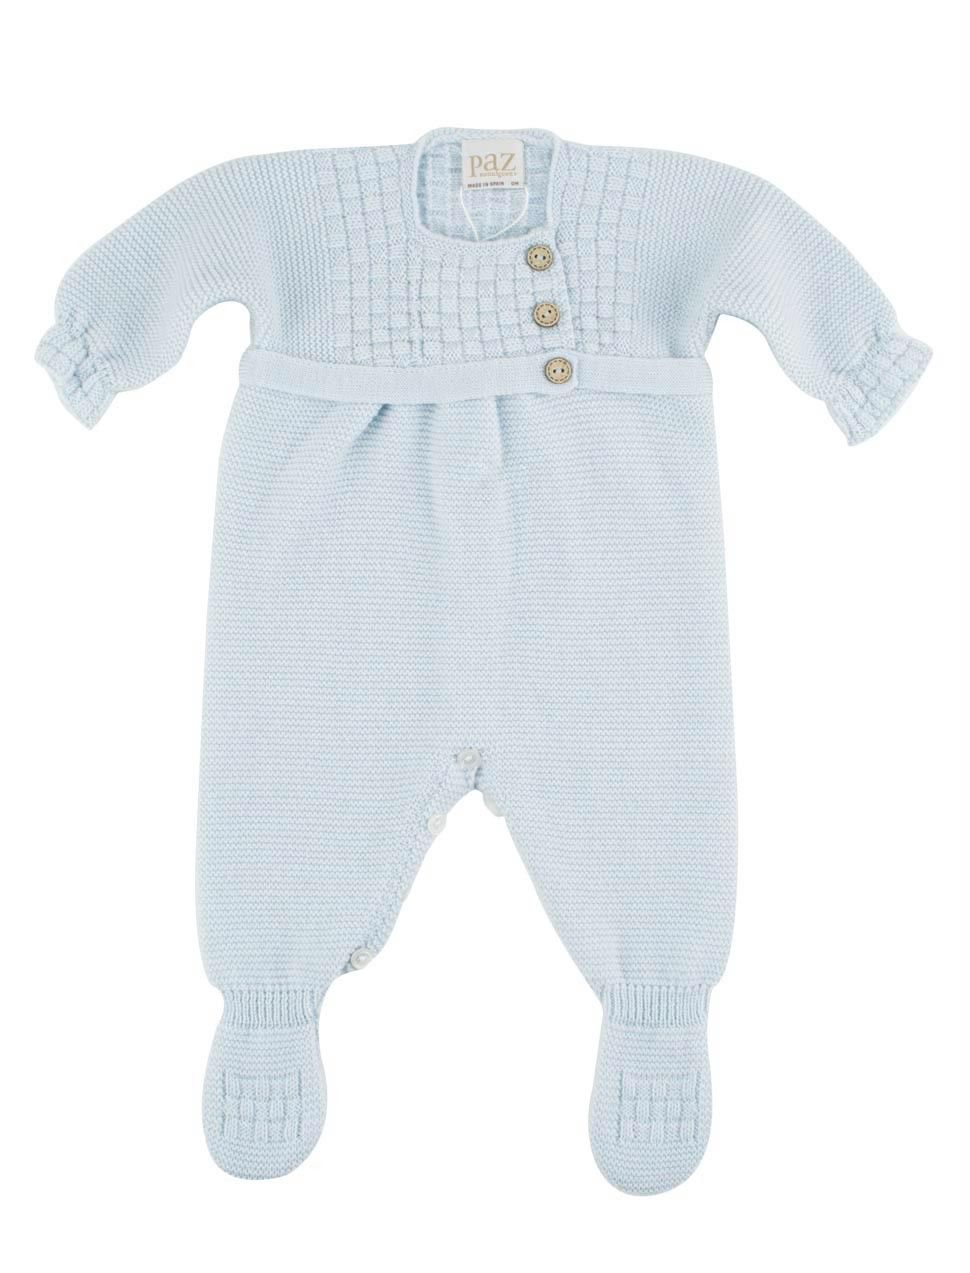 Woolen babygrow with braided top in fog blue from PAZ Rodríguez